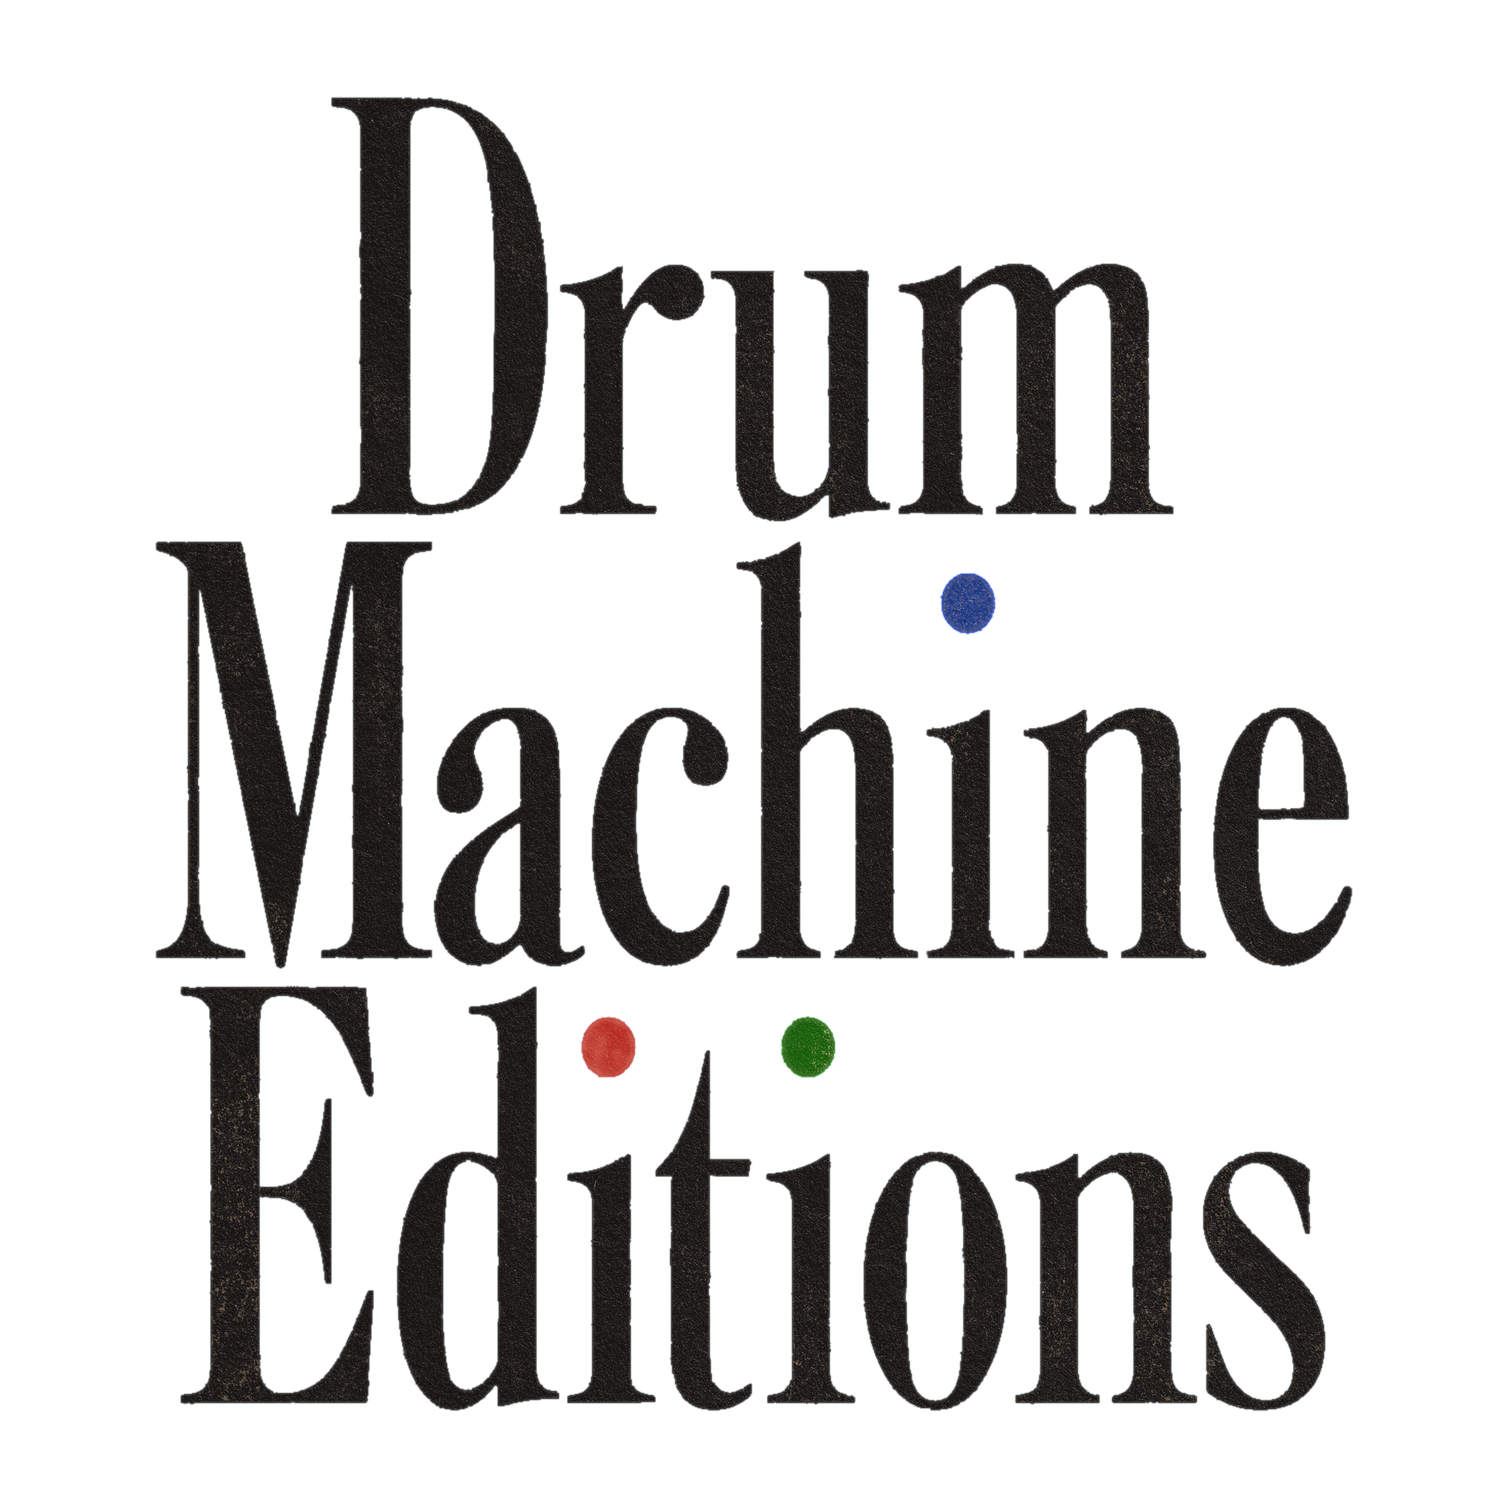 Drum Machine Editions